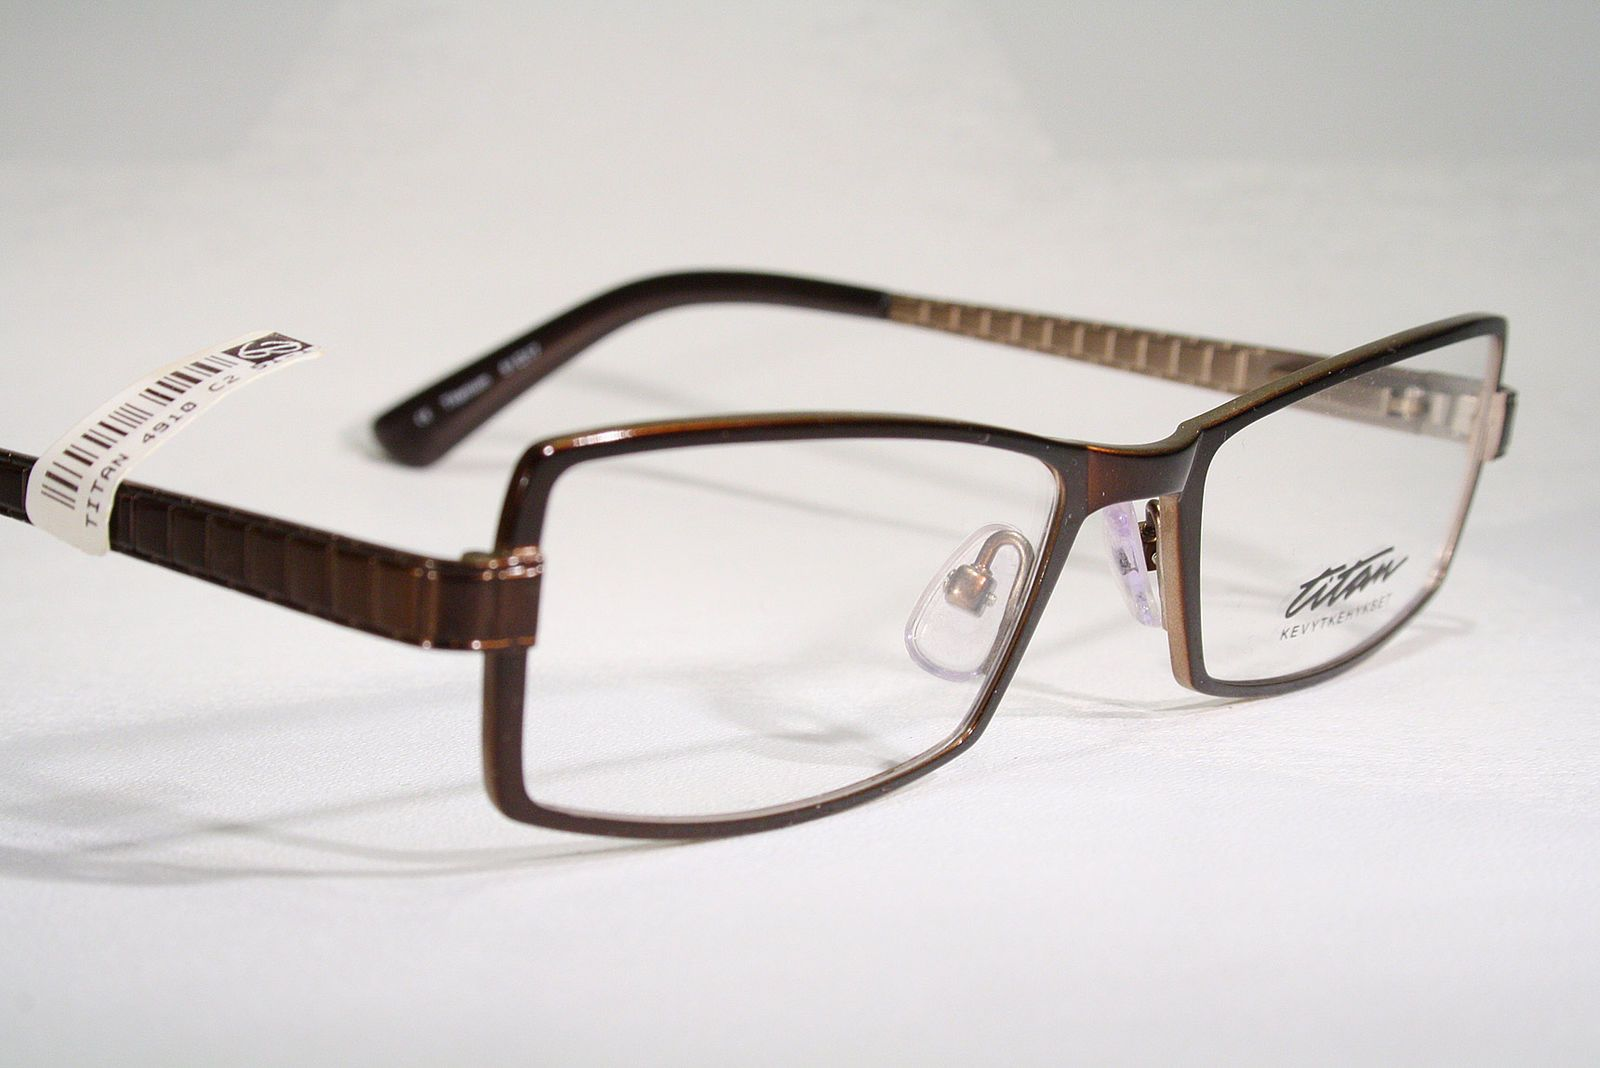 9799daf1eac6 TITAN Men s Glossy Brown Nonallergenic Titanium Optical Eyeglass Frames  Glasses   eBay (RipVanW)